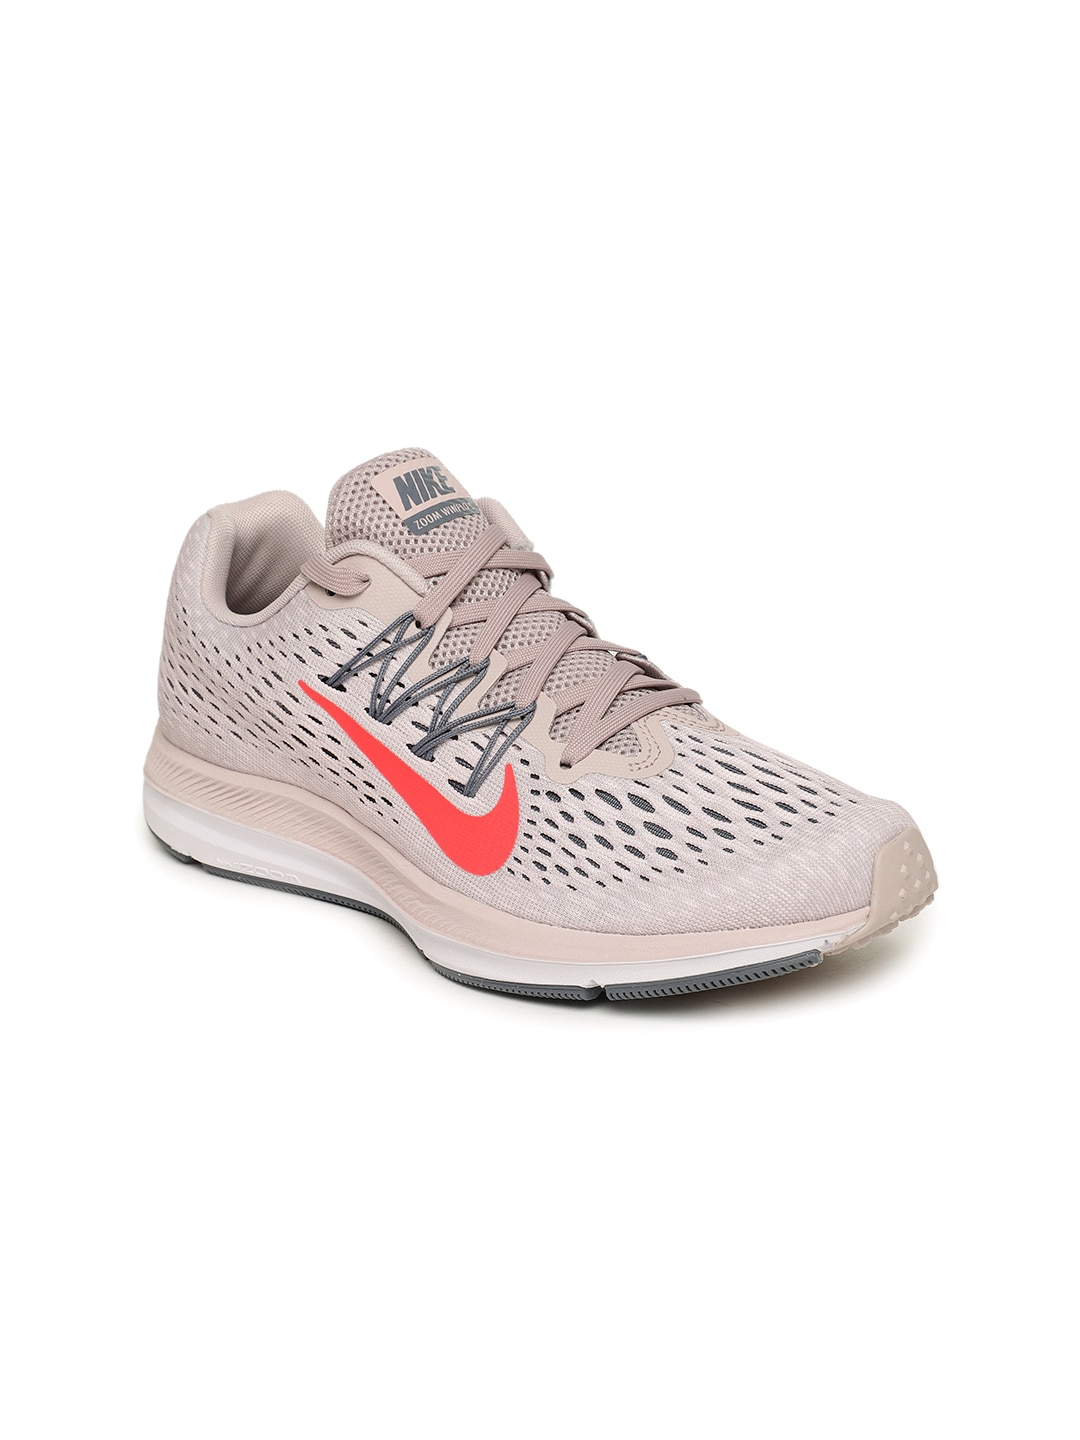 f6fd4873b364 Nike Casual Tracksuits Sports Shoes - Buy Nike Casual Tracksuits Sports  Shoes online in India